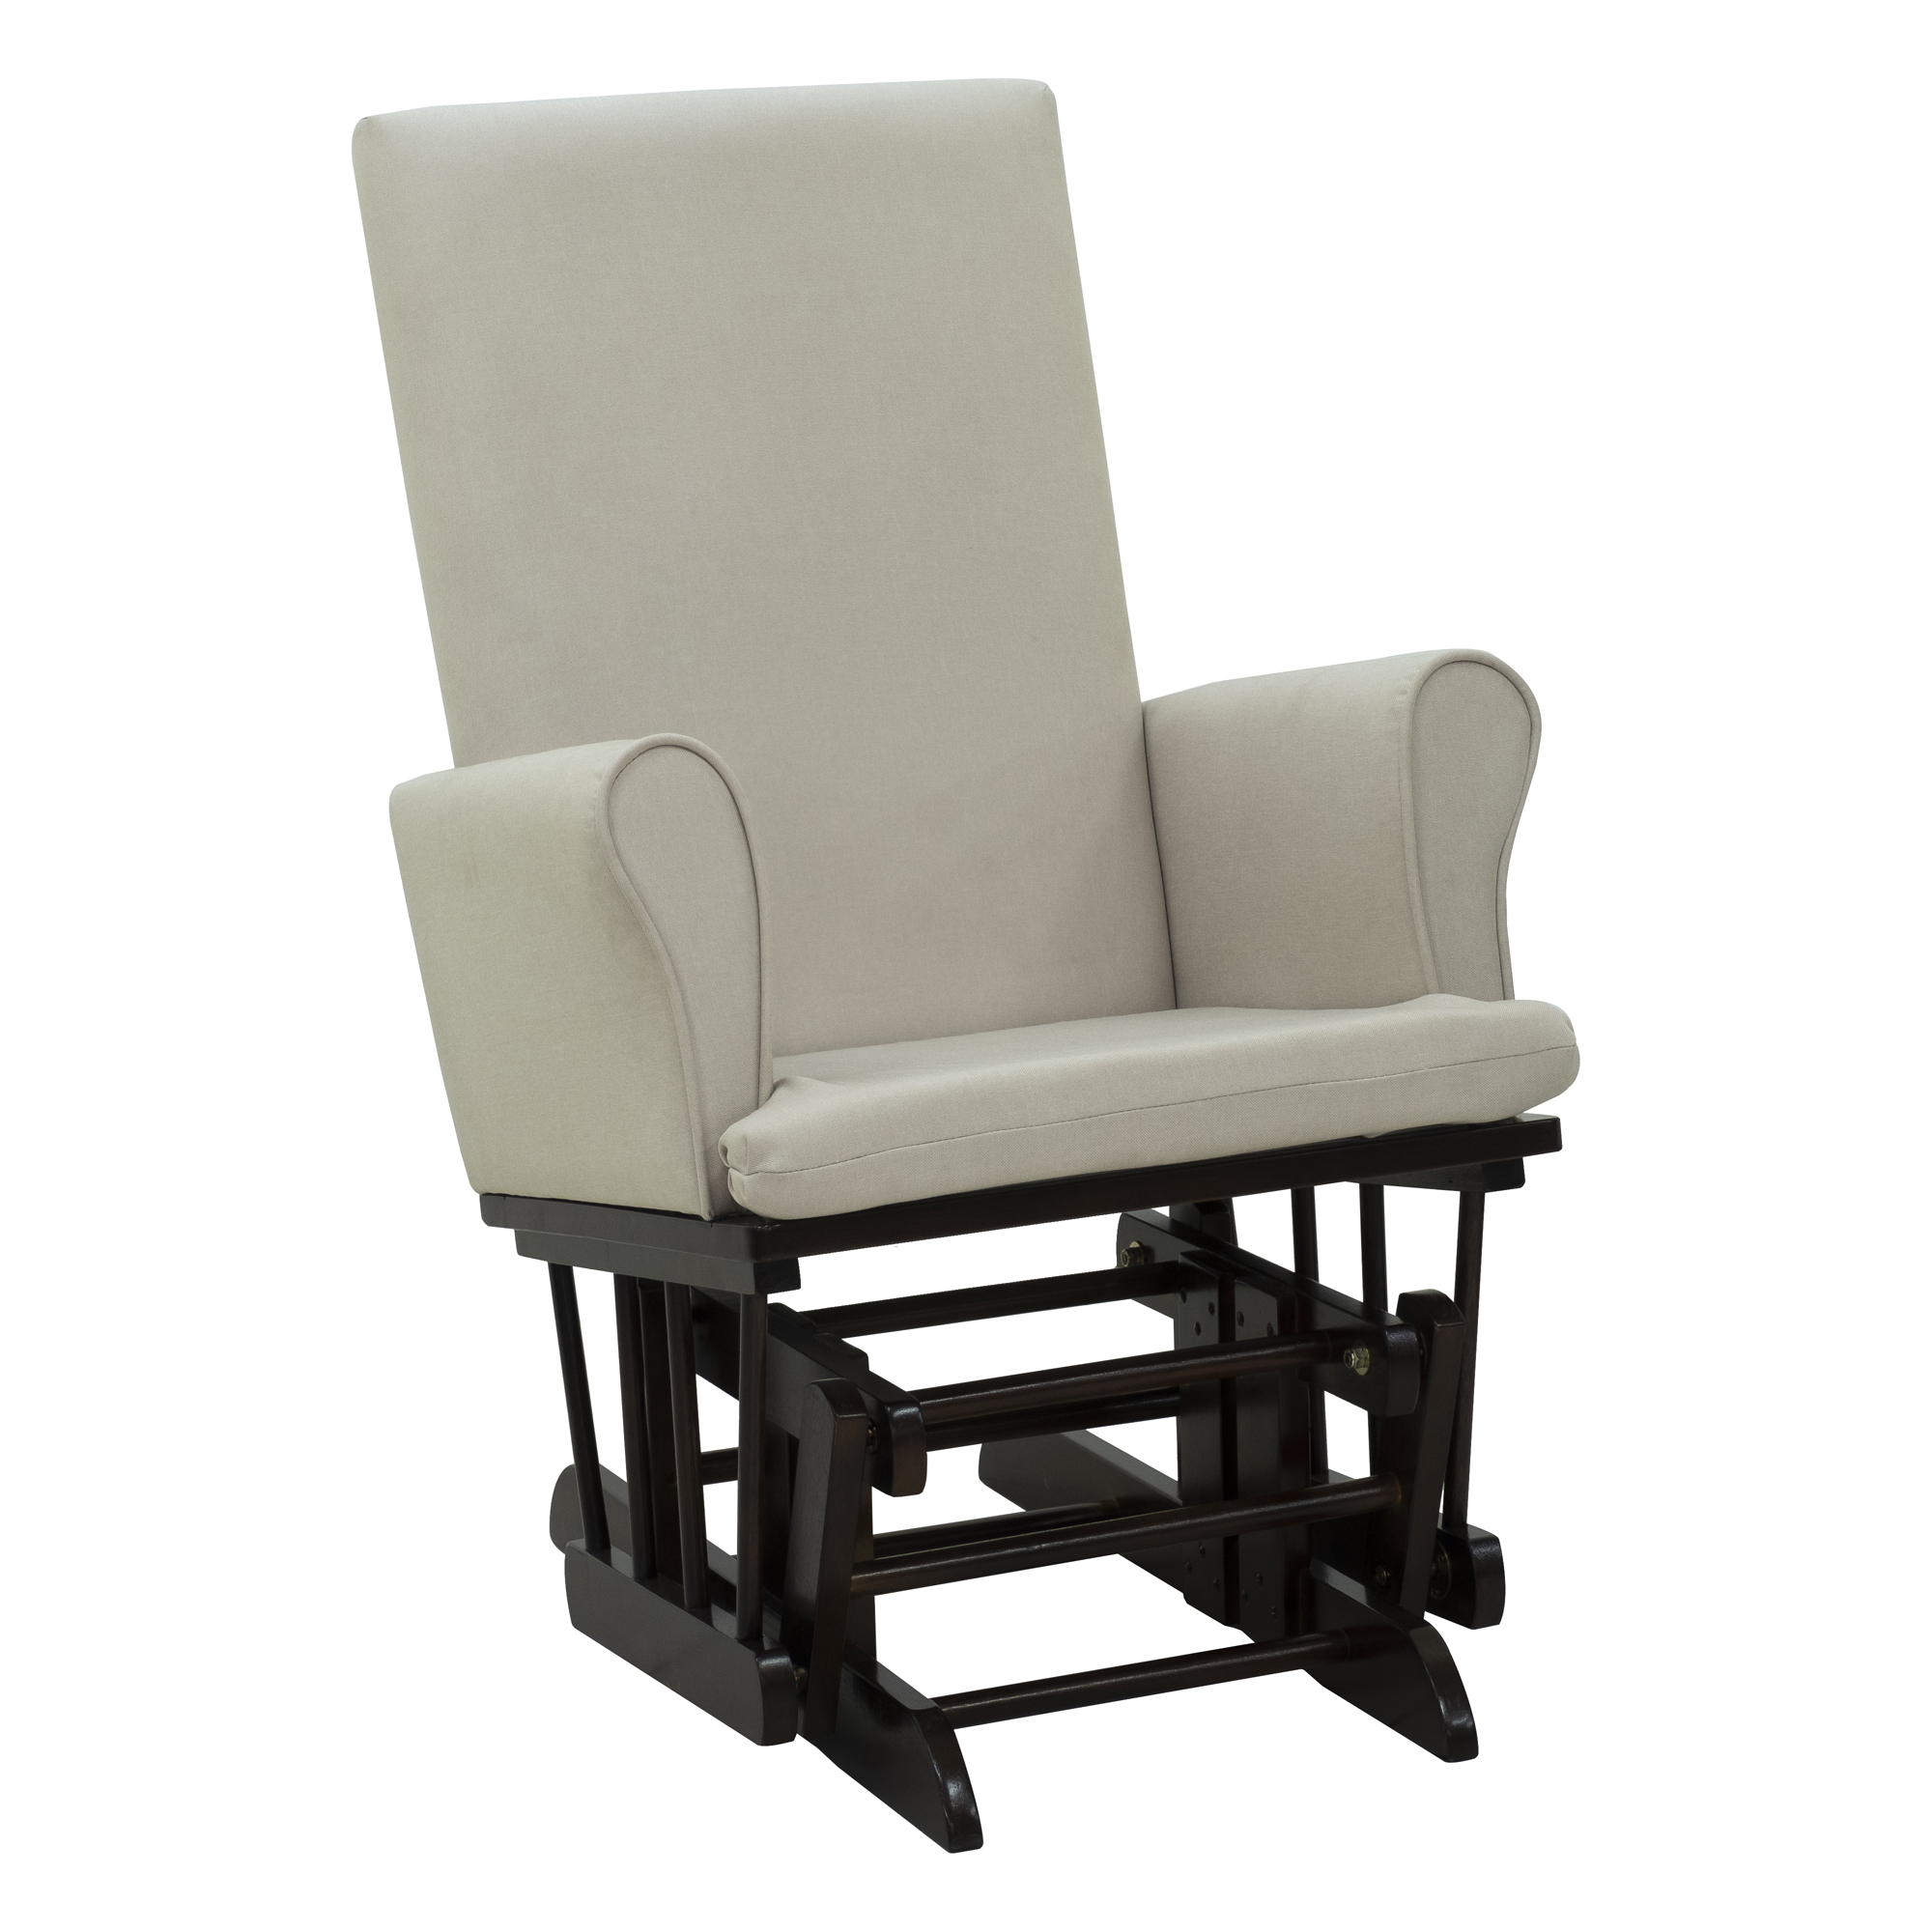 Details About 2PC Baby Nursery Relax Rocker Rocking Chair Glider U0026 Ottoman  Sofa Set